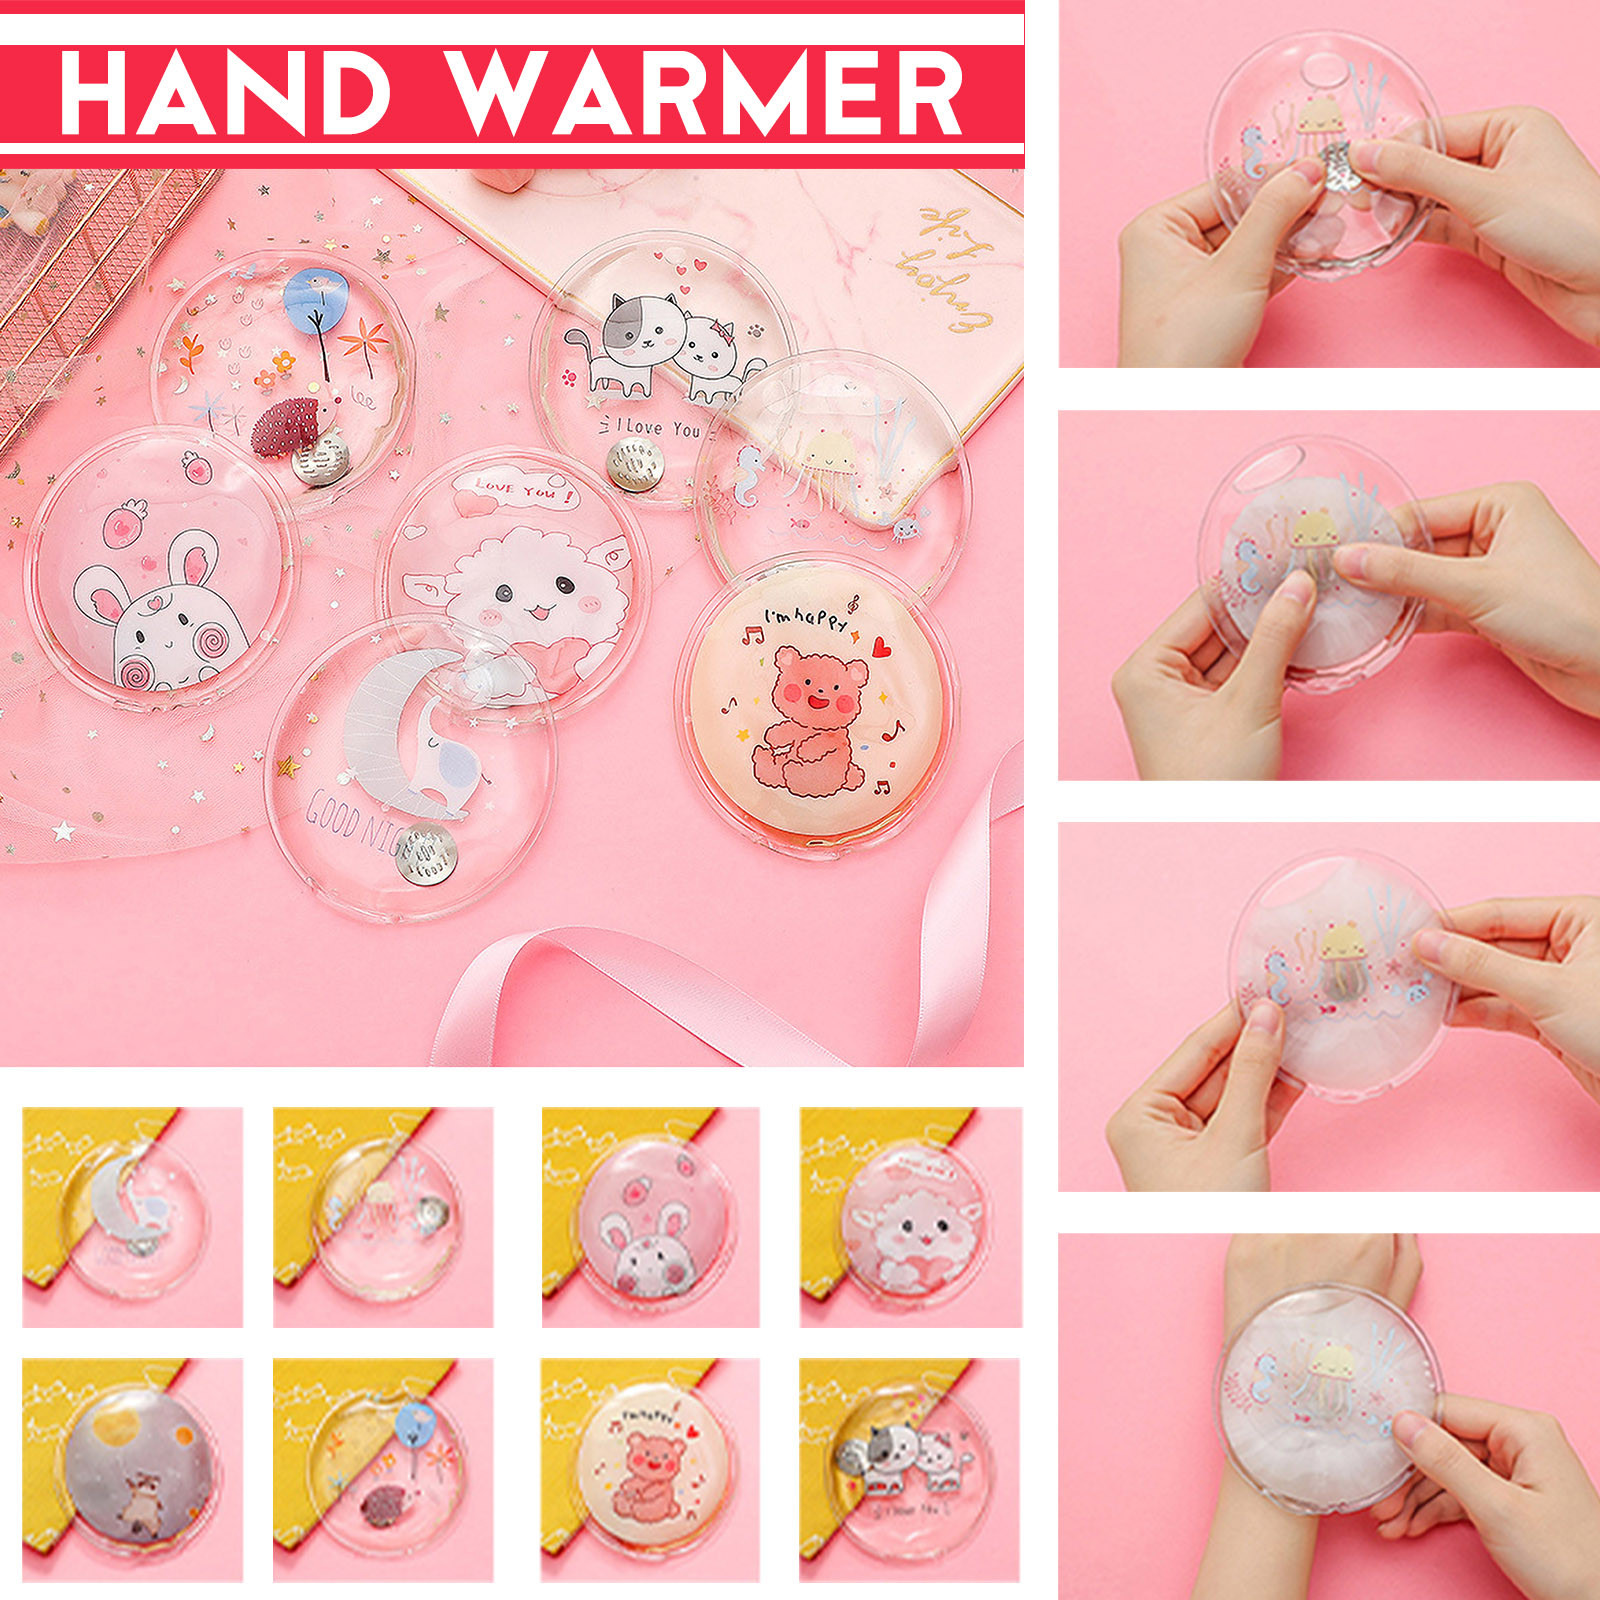 Hand-Warmer Self-Heating-Gel Reusable Winter with Cute Animal-Print 60-Degree